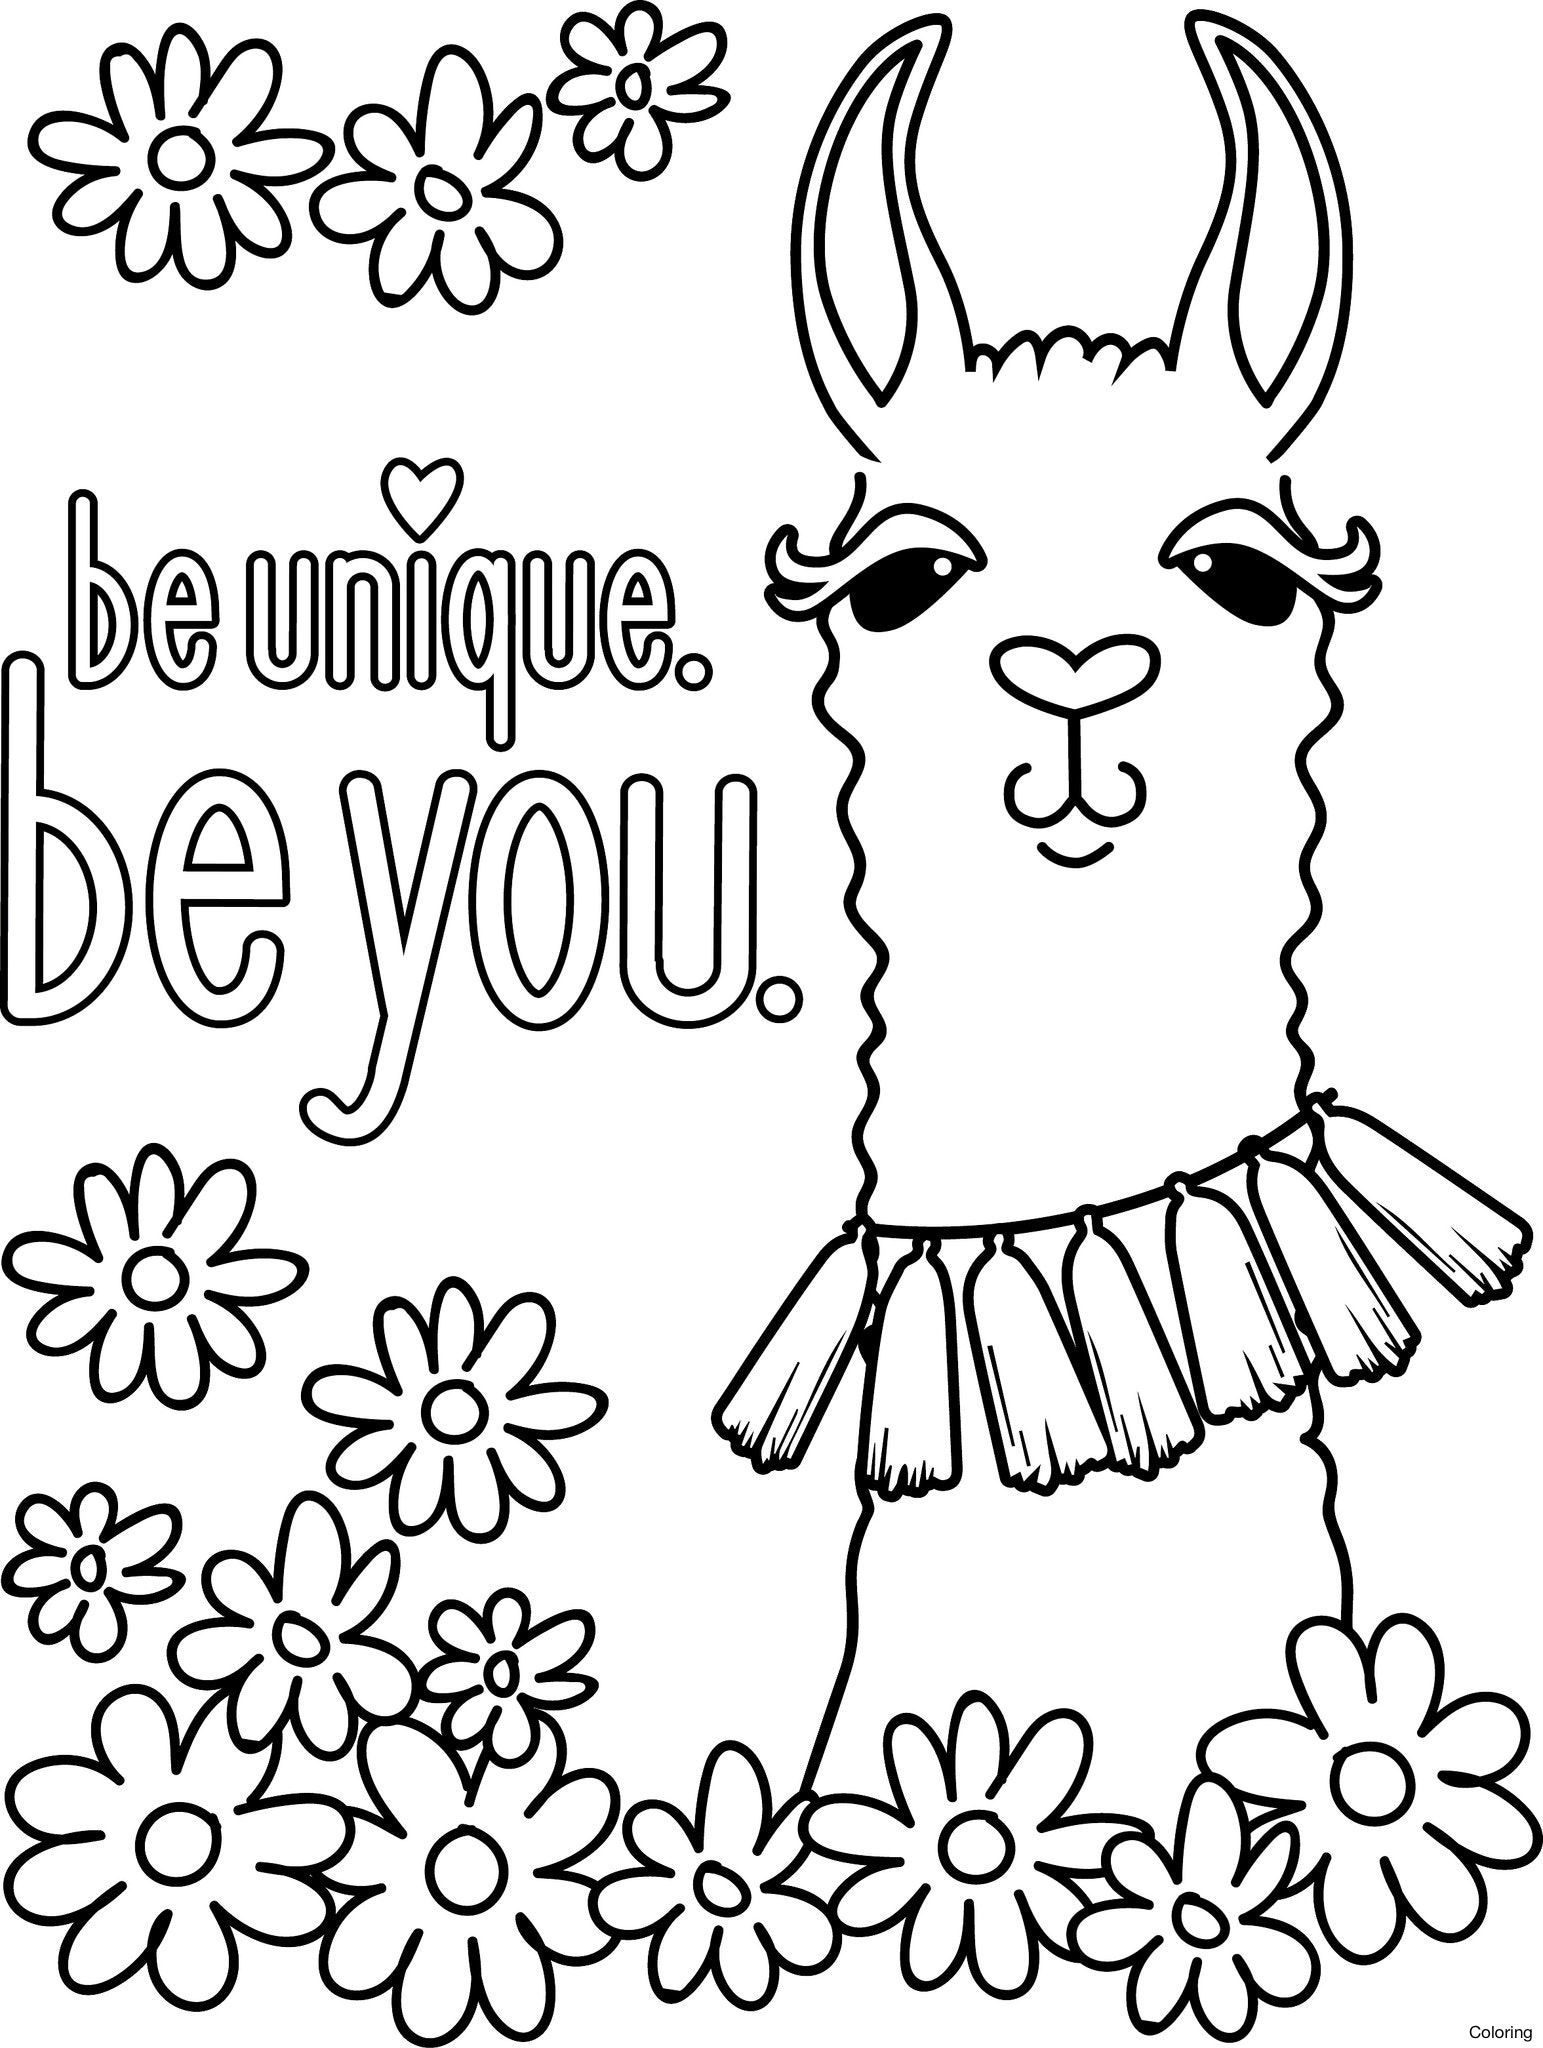 Fluffmonger C2 Ae Falafel The Llama Coloring Page A 01 Pages Collection Coloring Pages For Girls Coloring Pages Coloring Pages For Kids